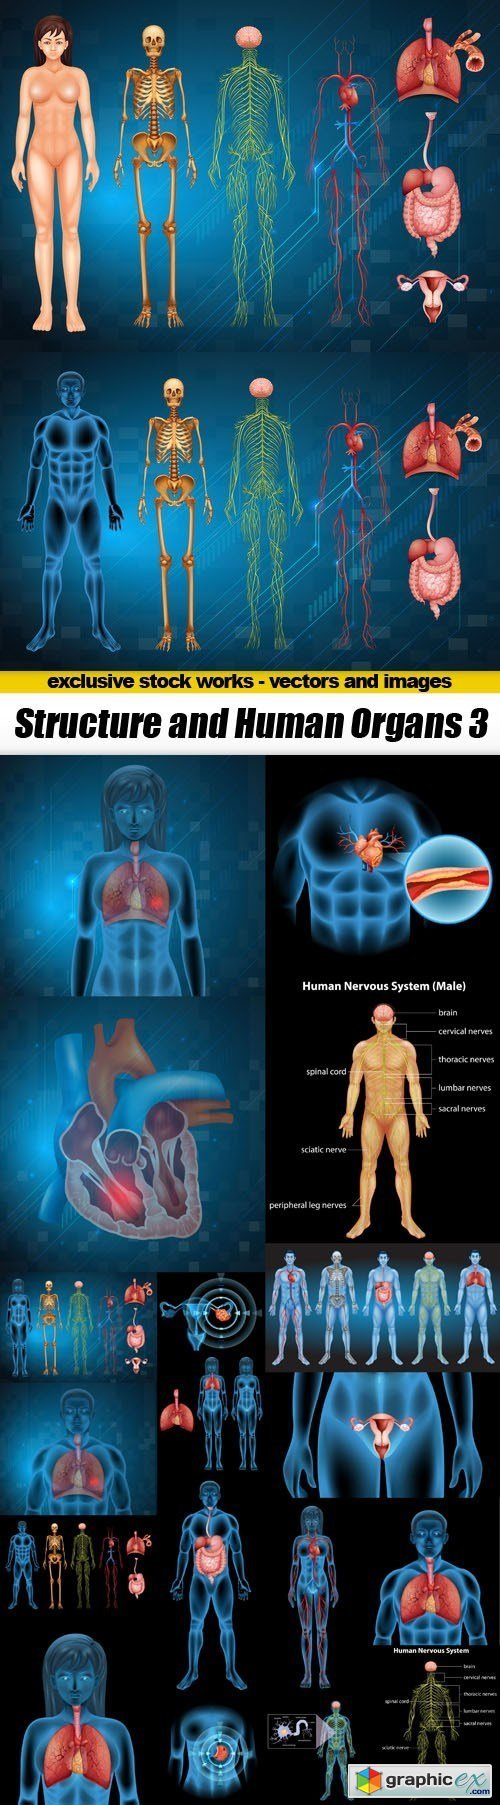 Structure and Human Organs 3 - 20xEPS